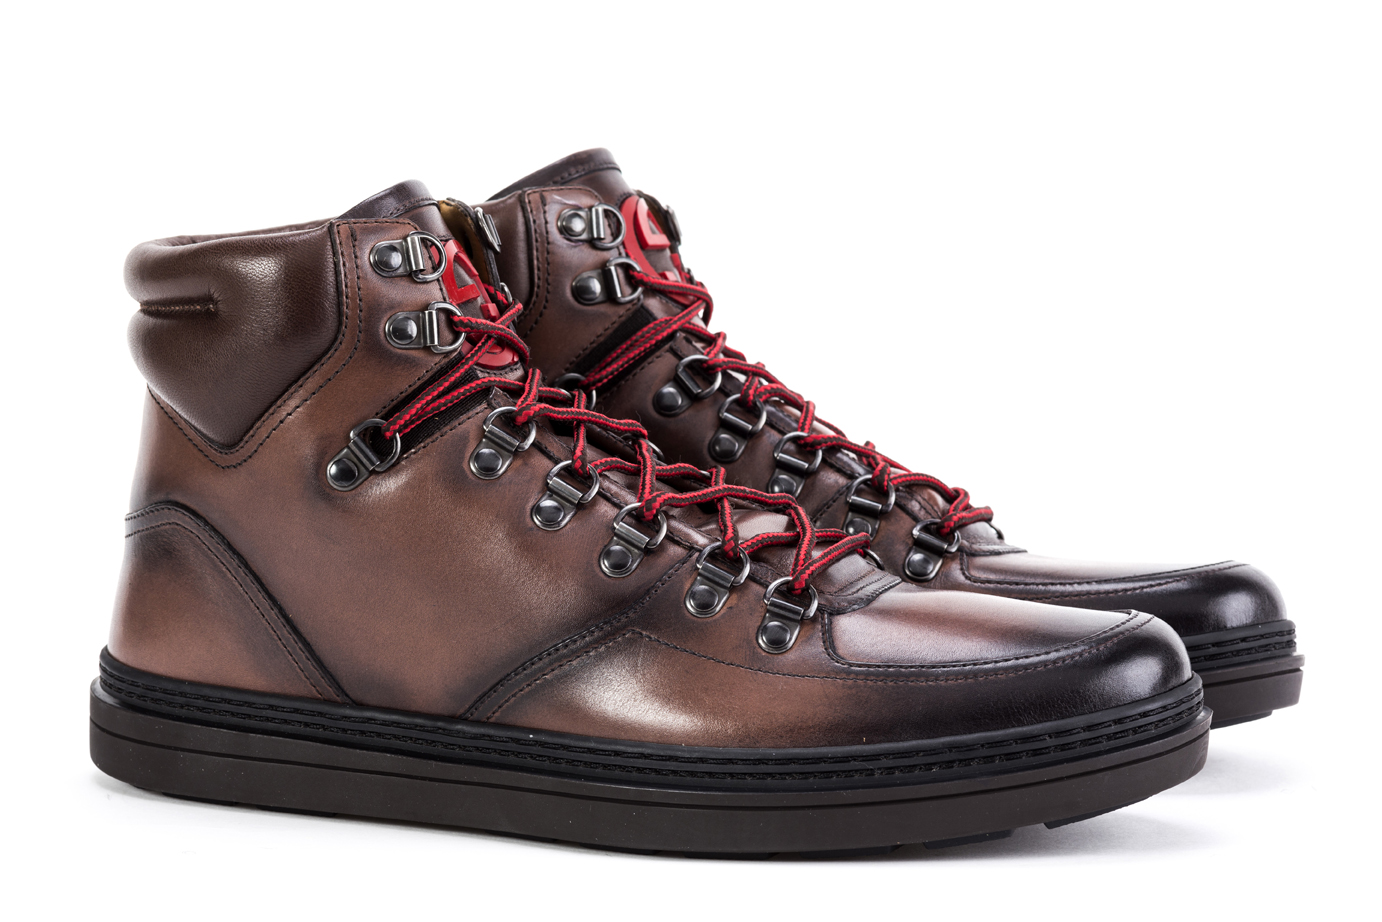 3e2a1428e36 Details about Mens Ankle Boots GUCCI Trekking Shoes 368496 B66Y0 2140  Hiking Brown Leather